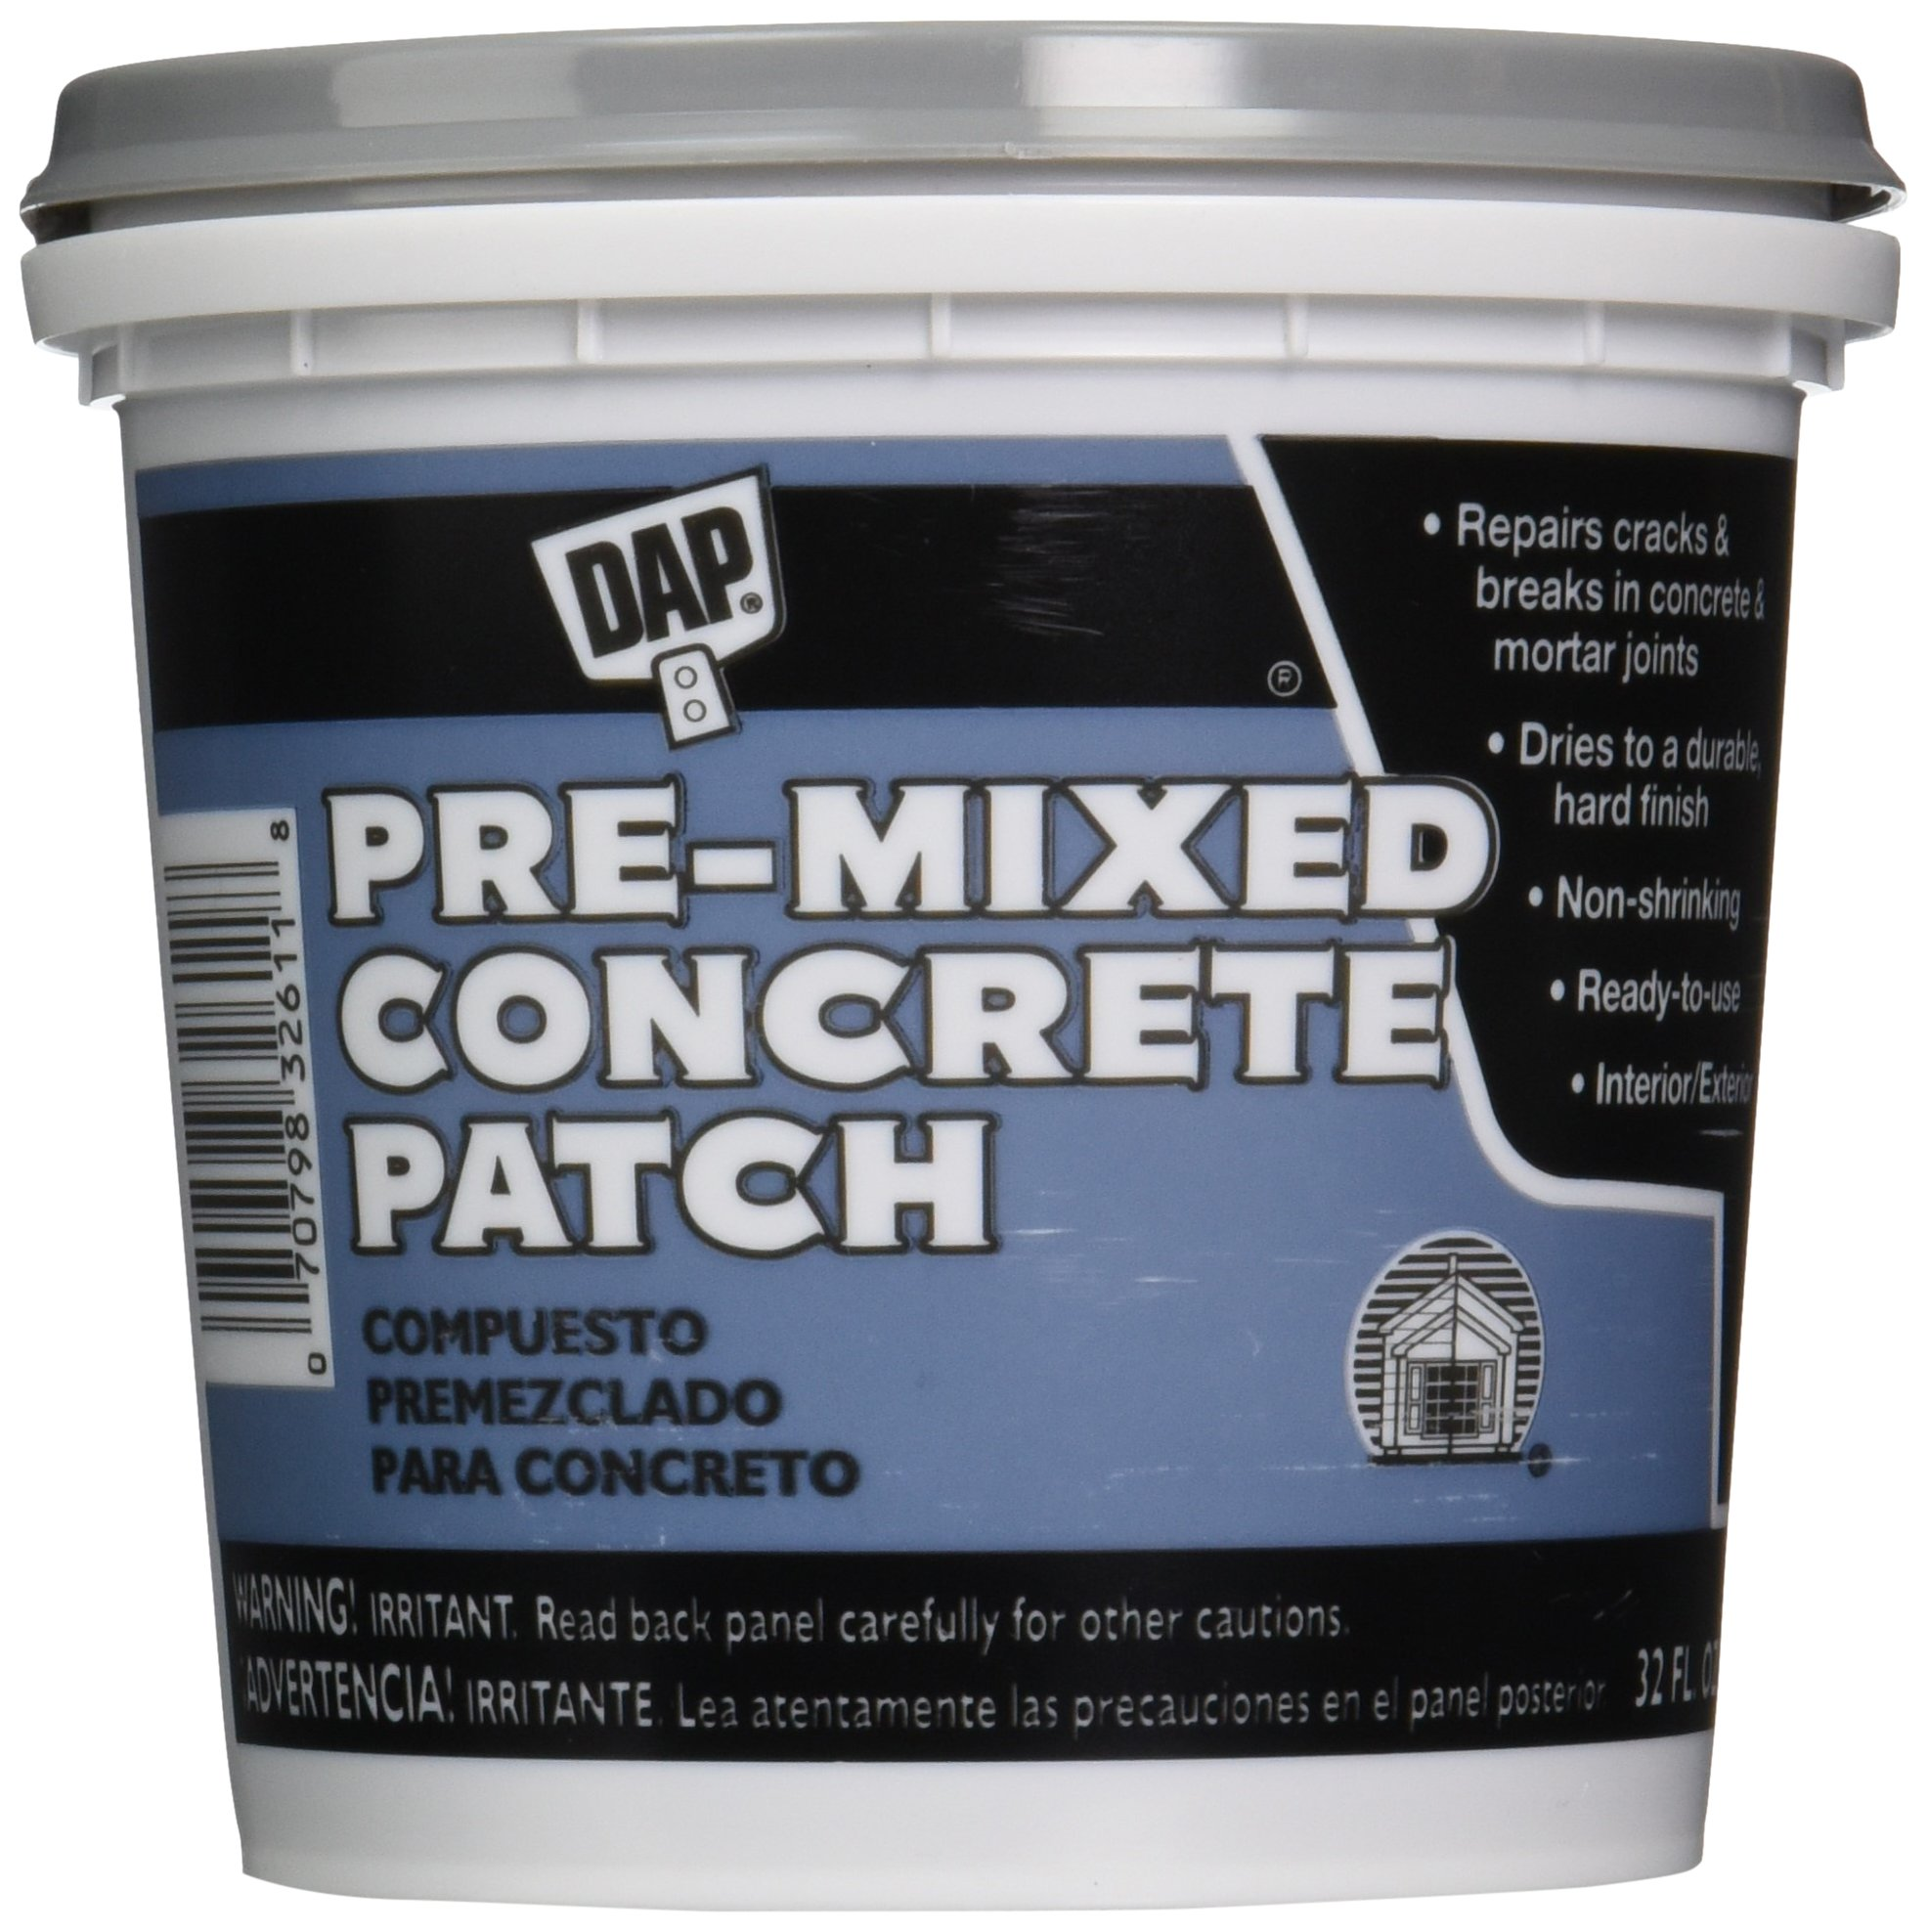 Dap 32611 Phenopatch Pre Mixed Concrete Patch Ebay